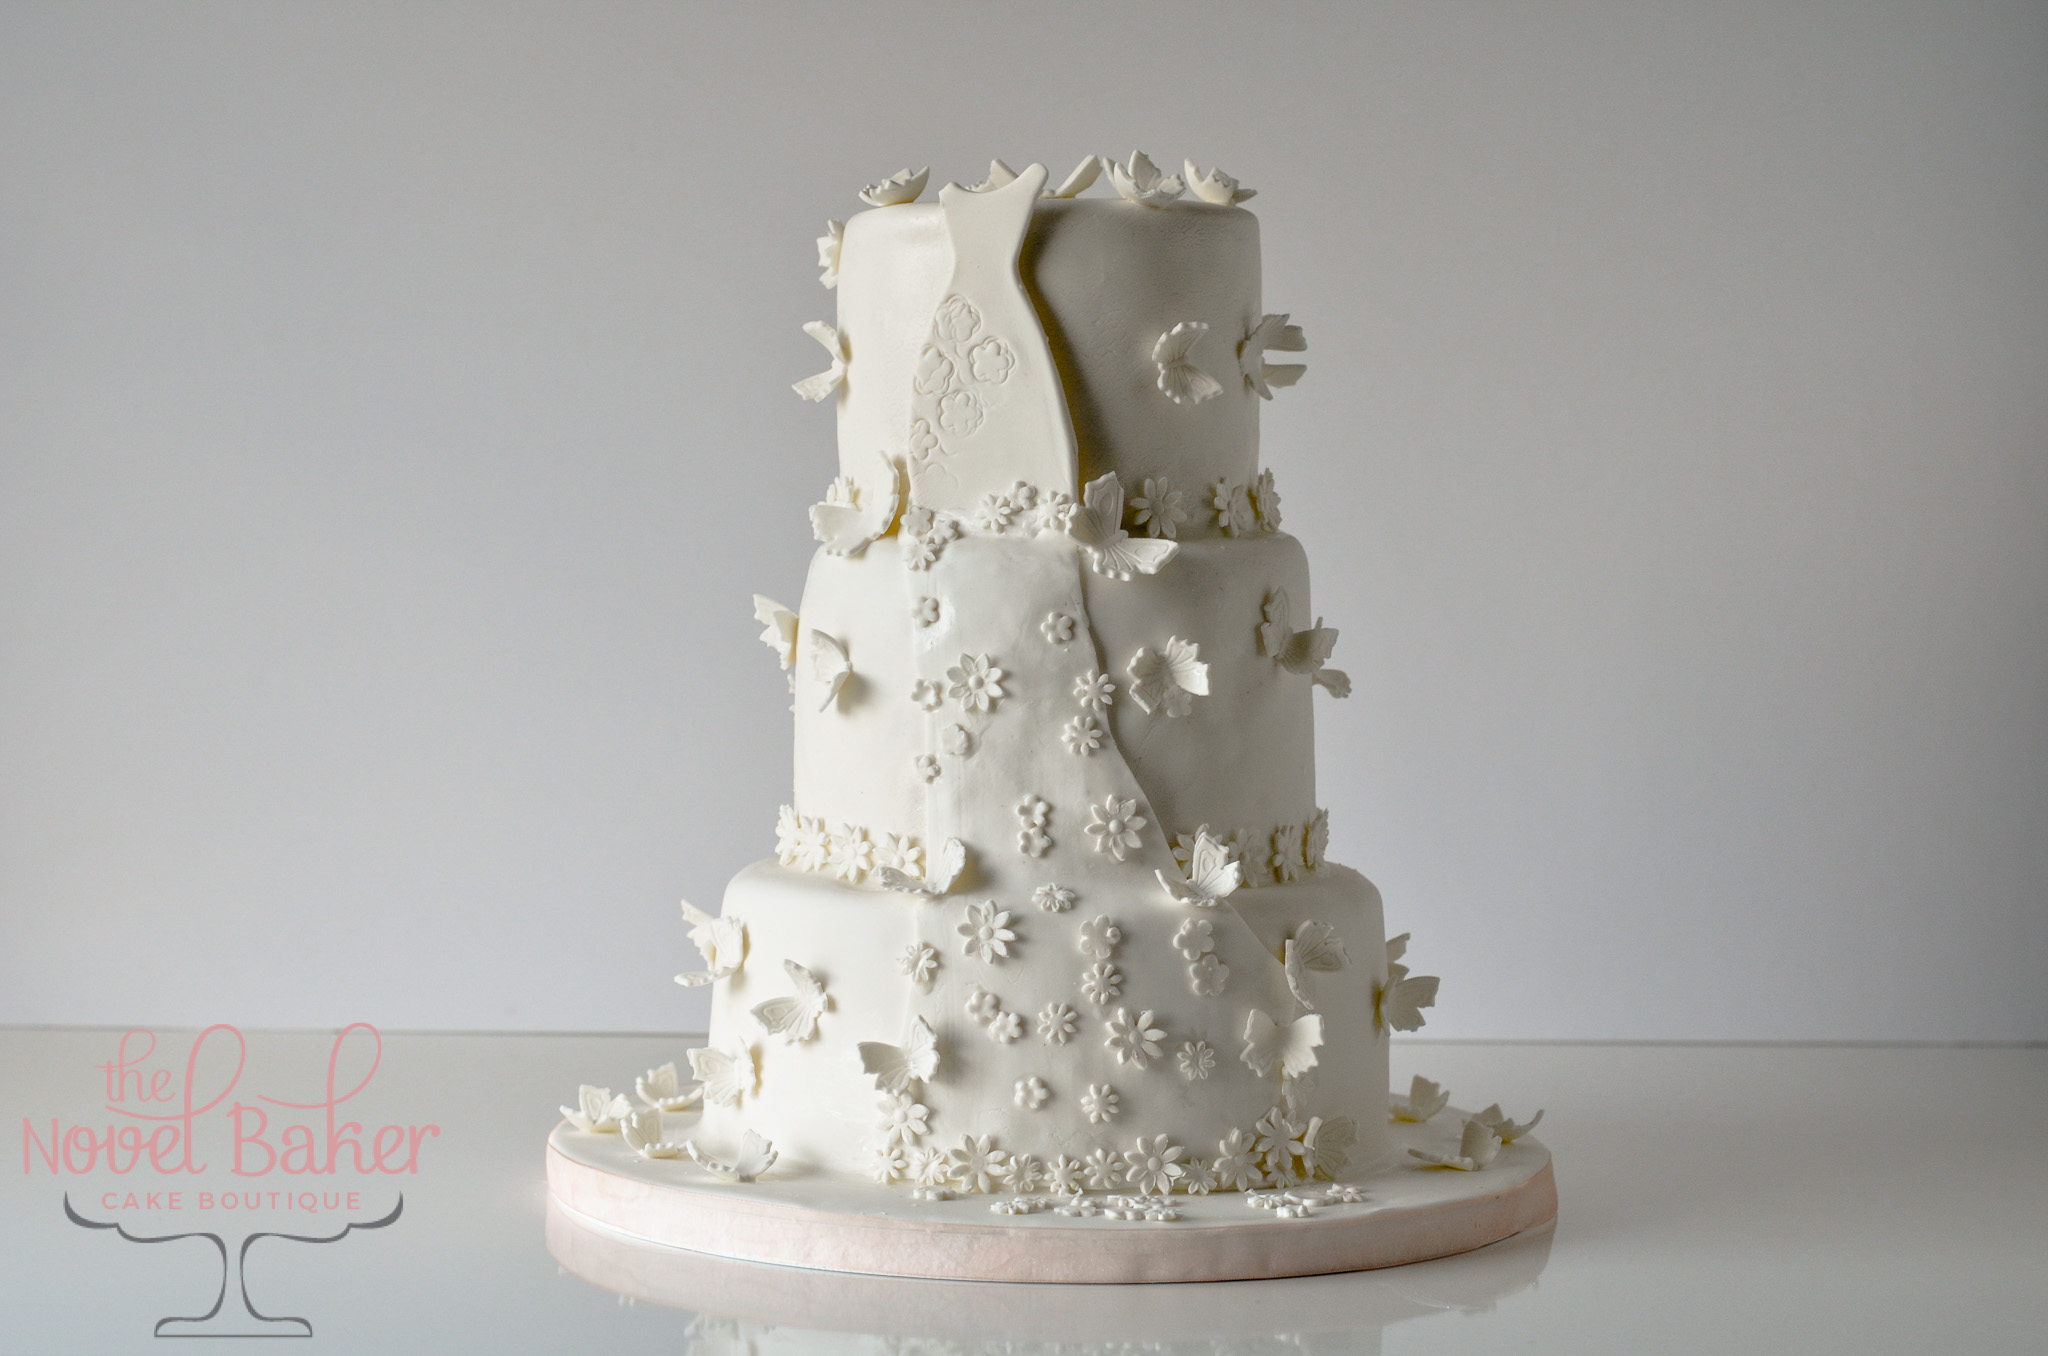 Three Tiers covered in white fondant with a white bridal gown cascading from top to bottom